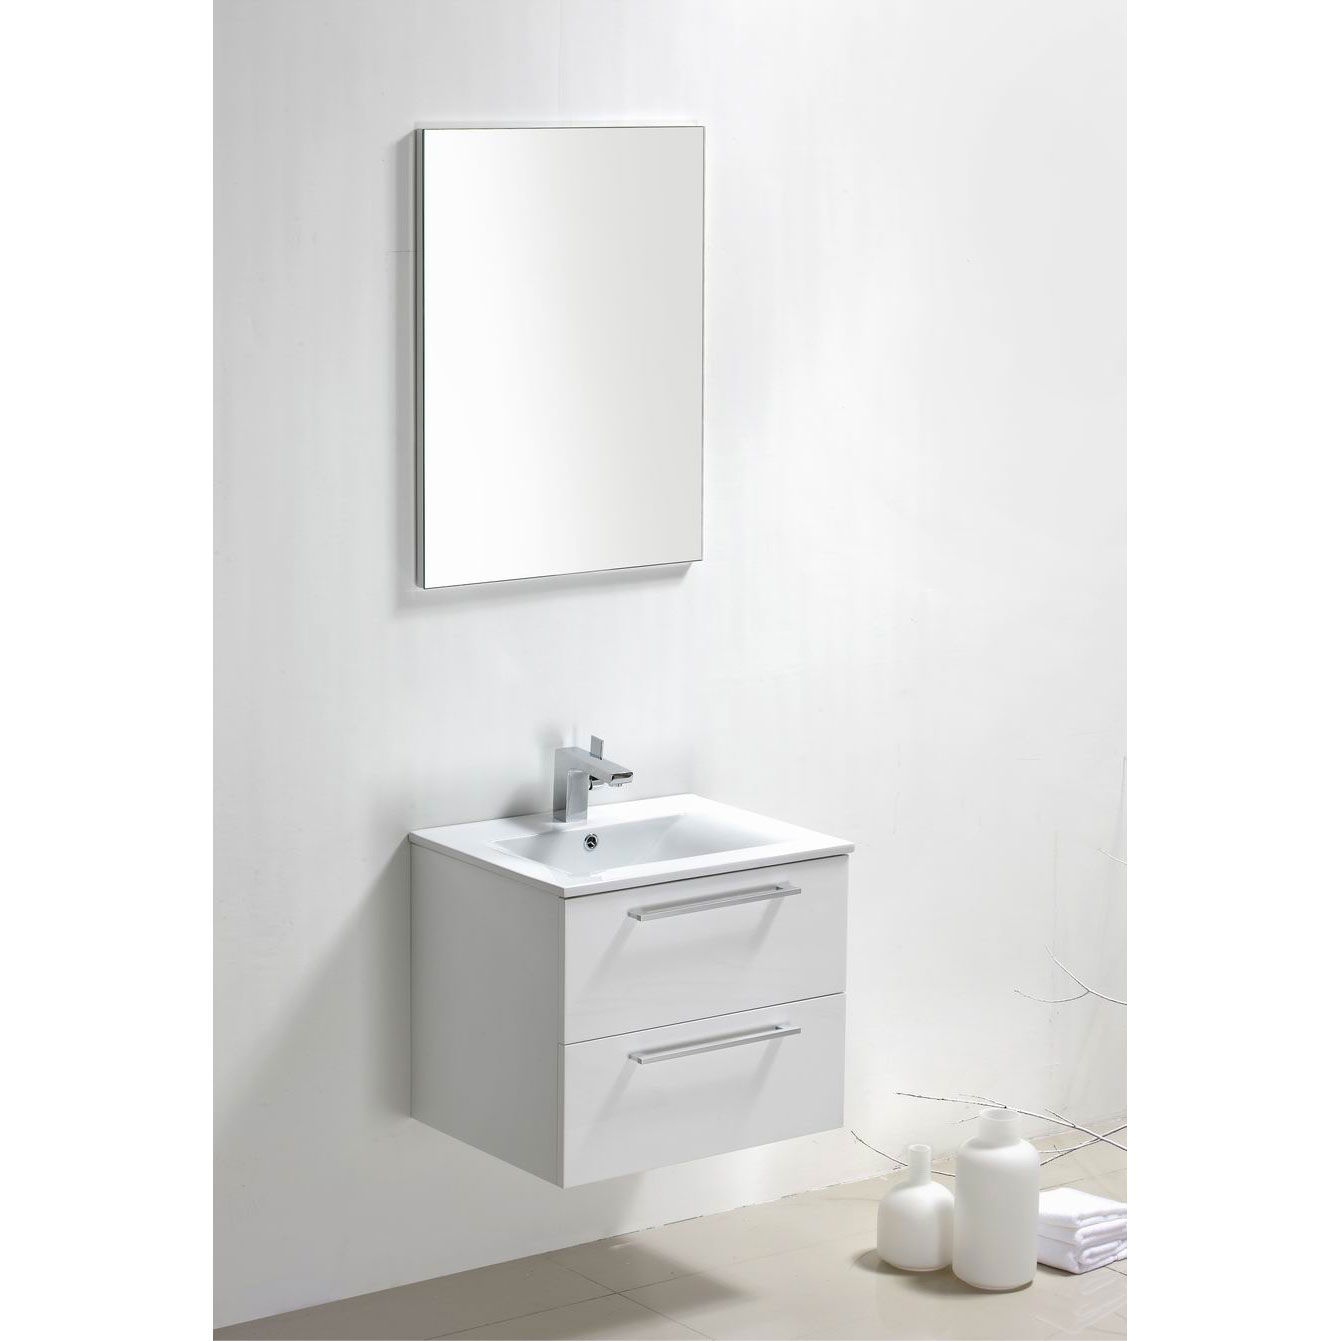 Buy Caen 24 Inch Wall Mount Modern Bathroom Vanity Set High Glossy White RS D